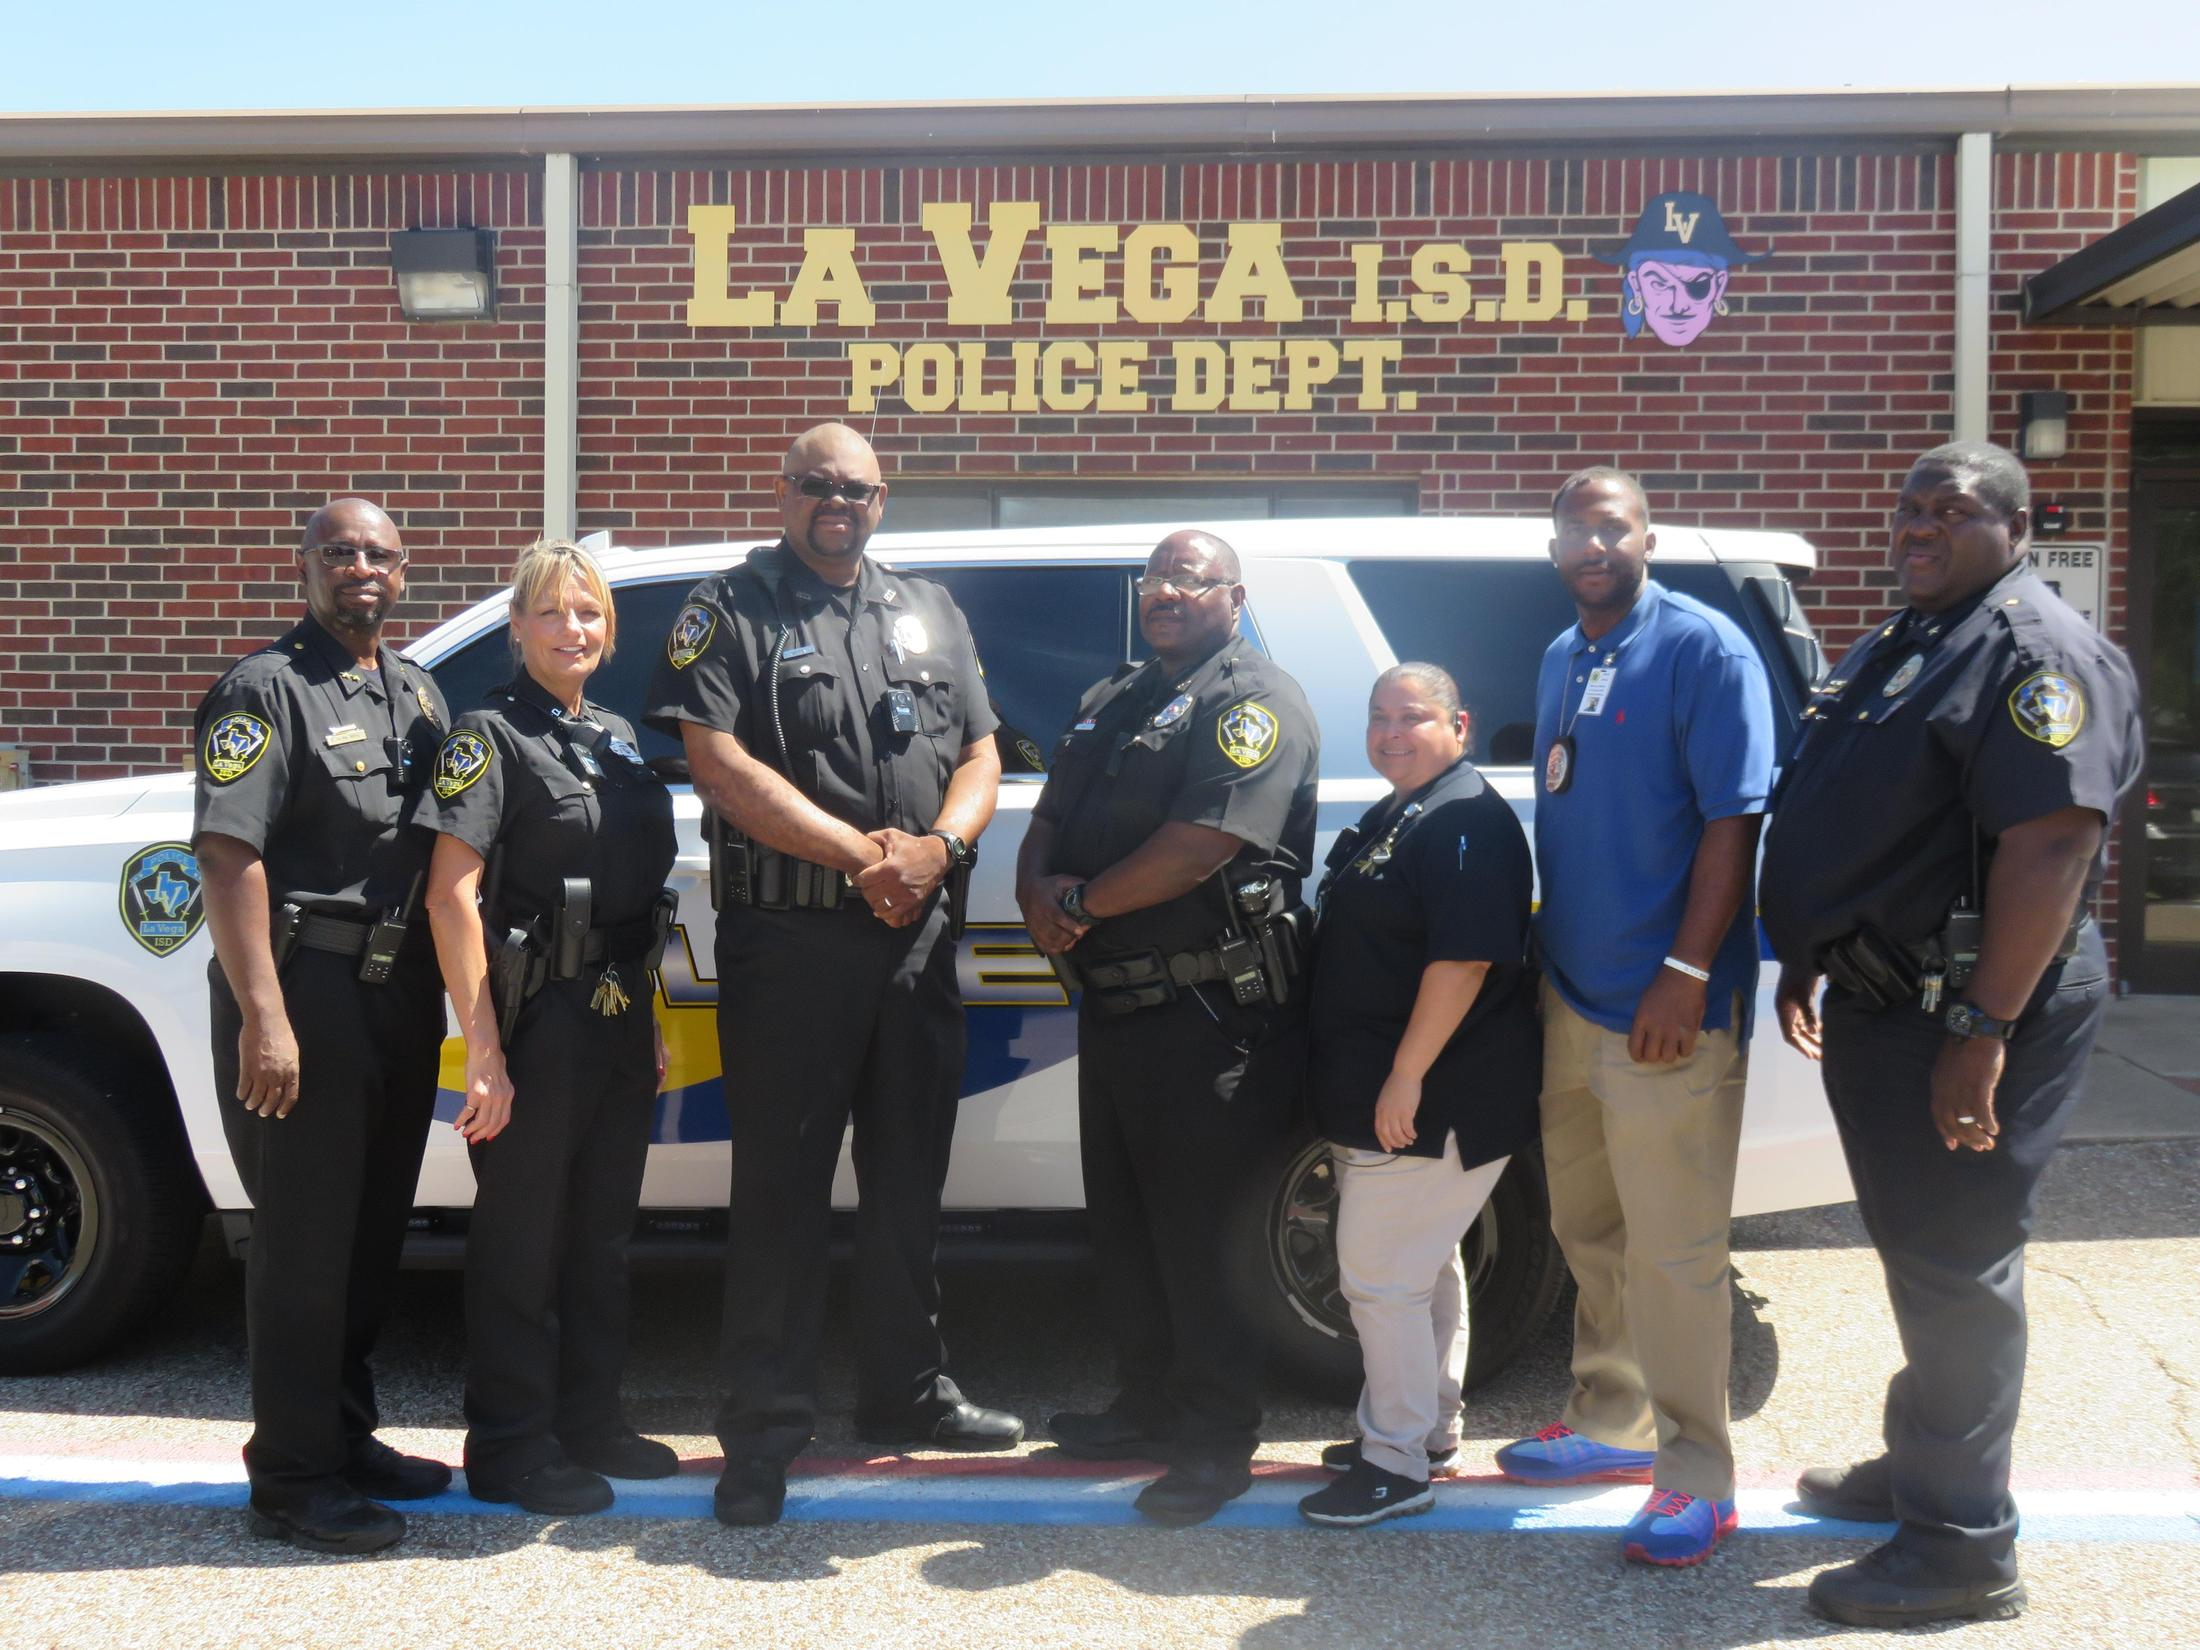 Protecting and Serving the Students – Police Department – La